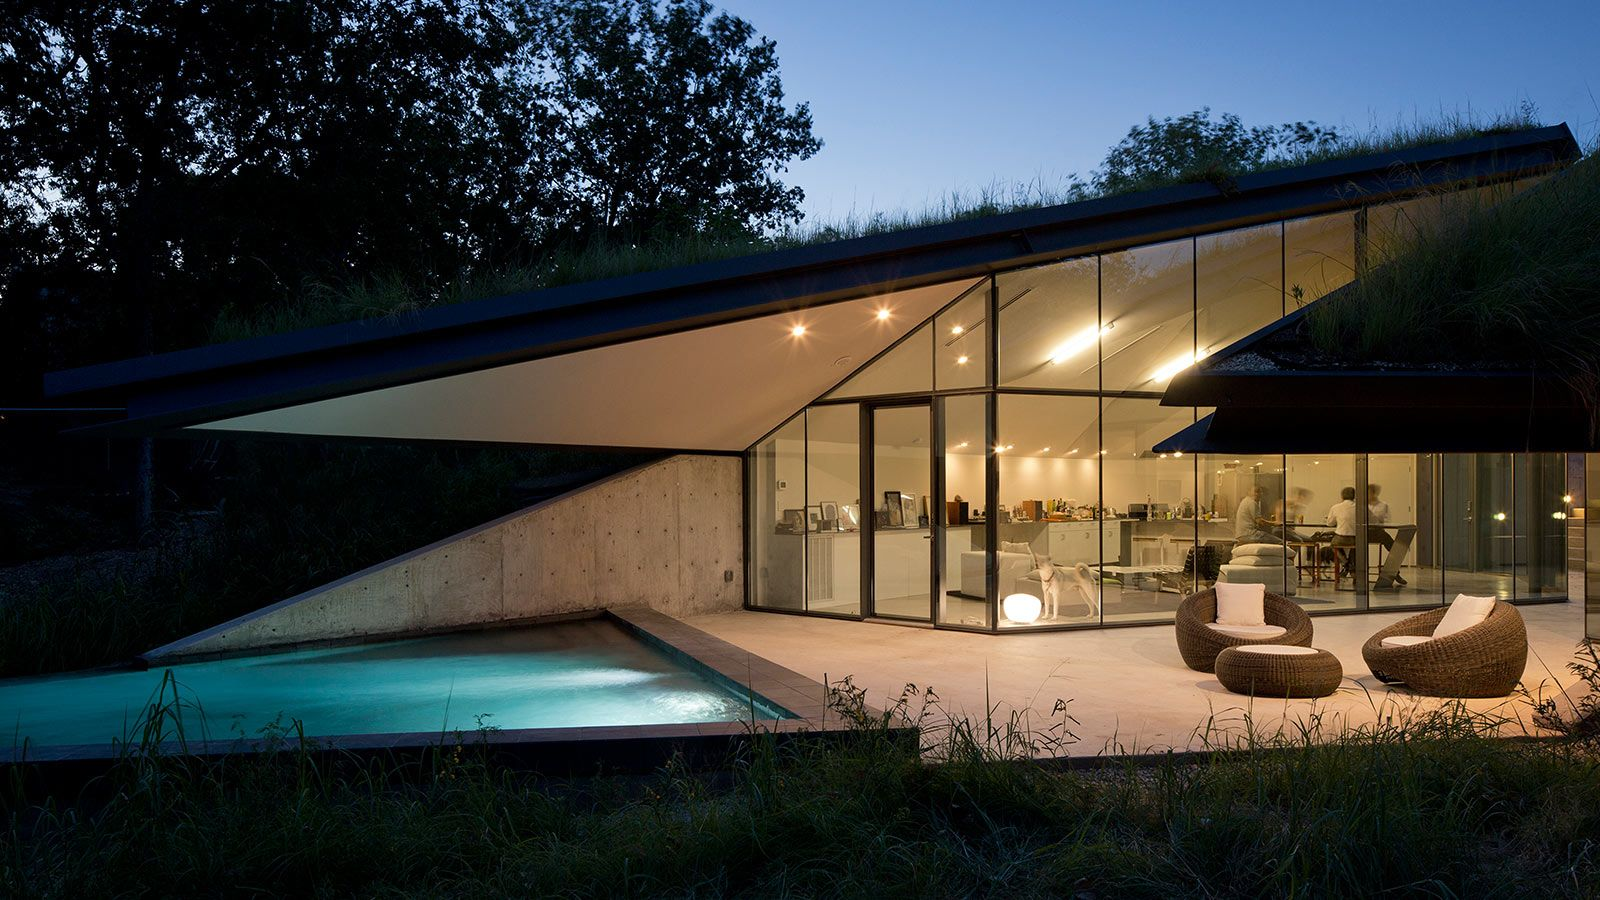 Edgeland Residence A Futuristic House With A Smart Pool Fit For A